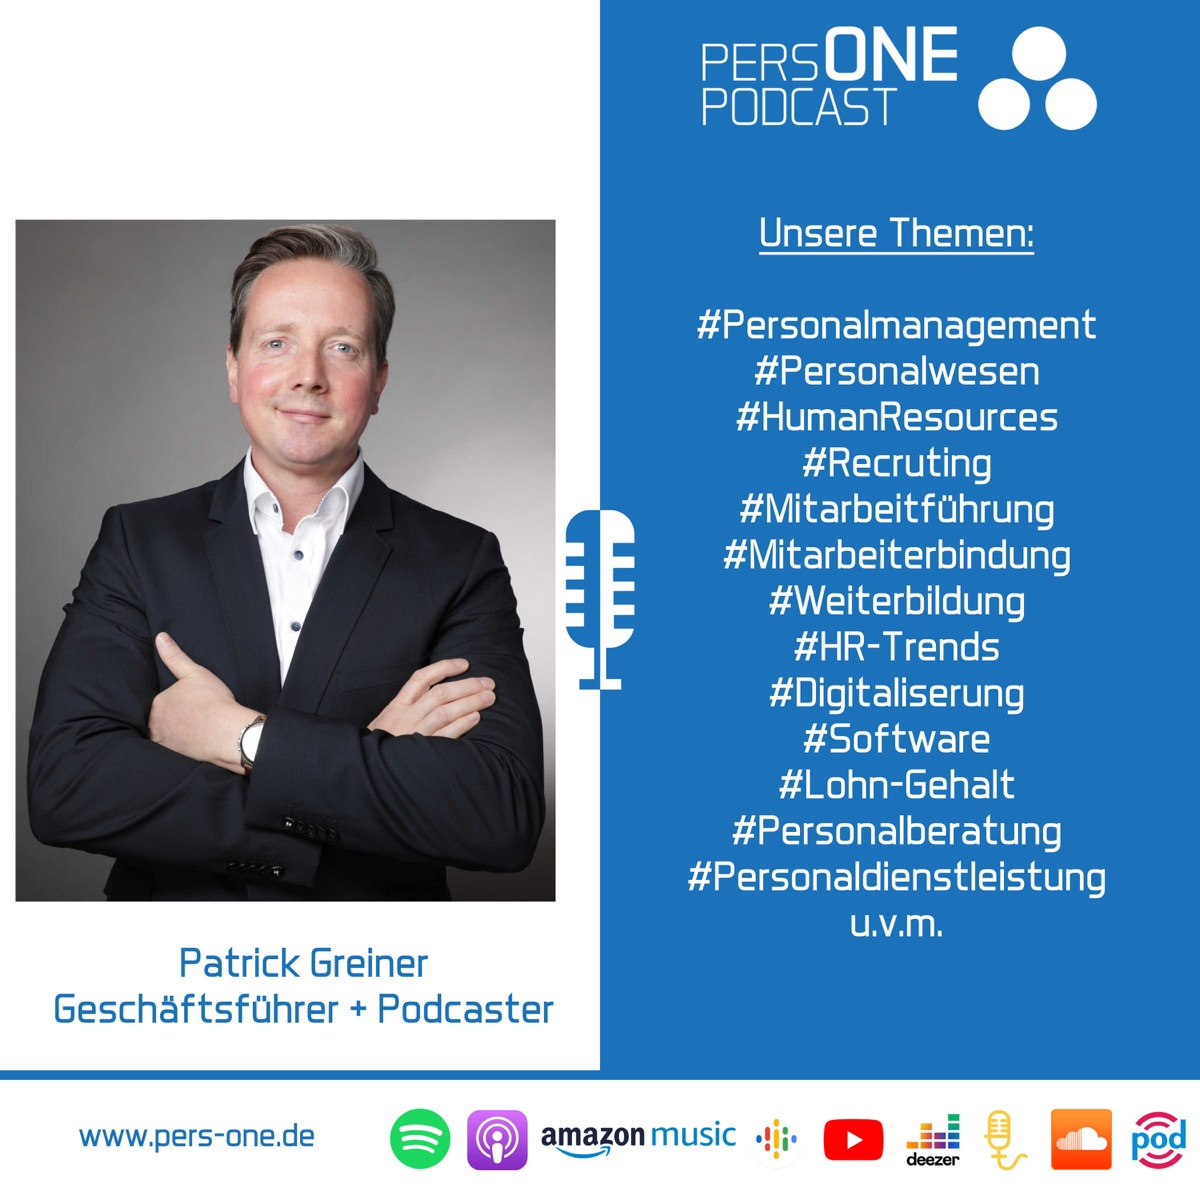 PERSONE PODCAST   Der Personal-Podcast